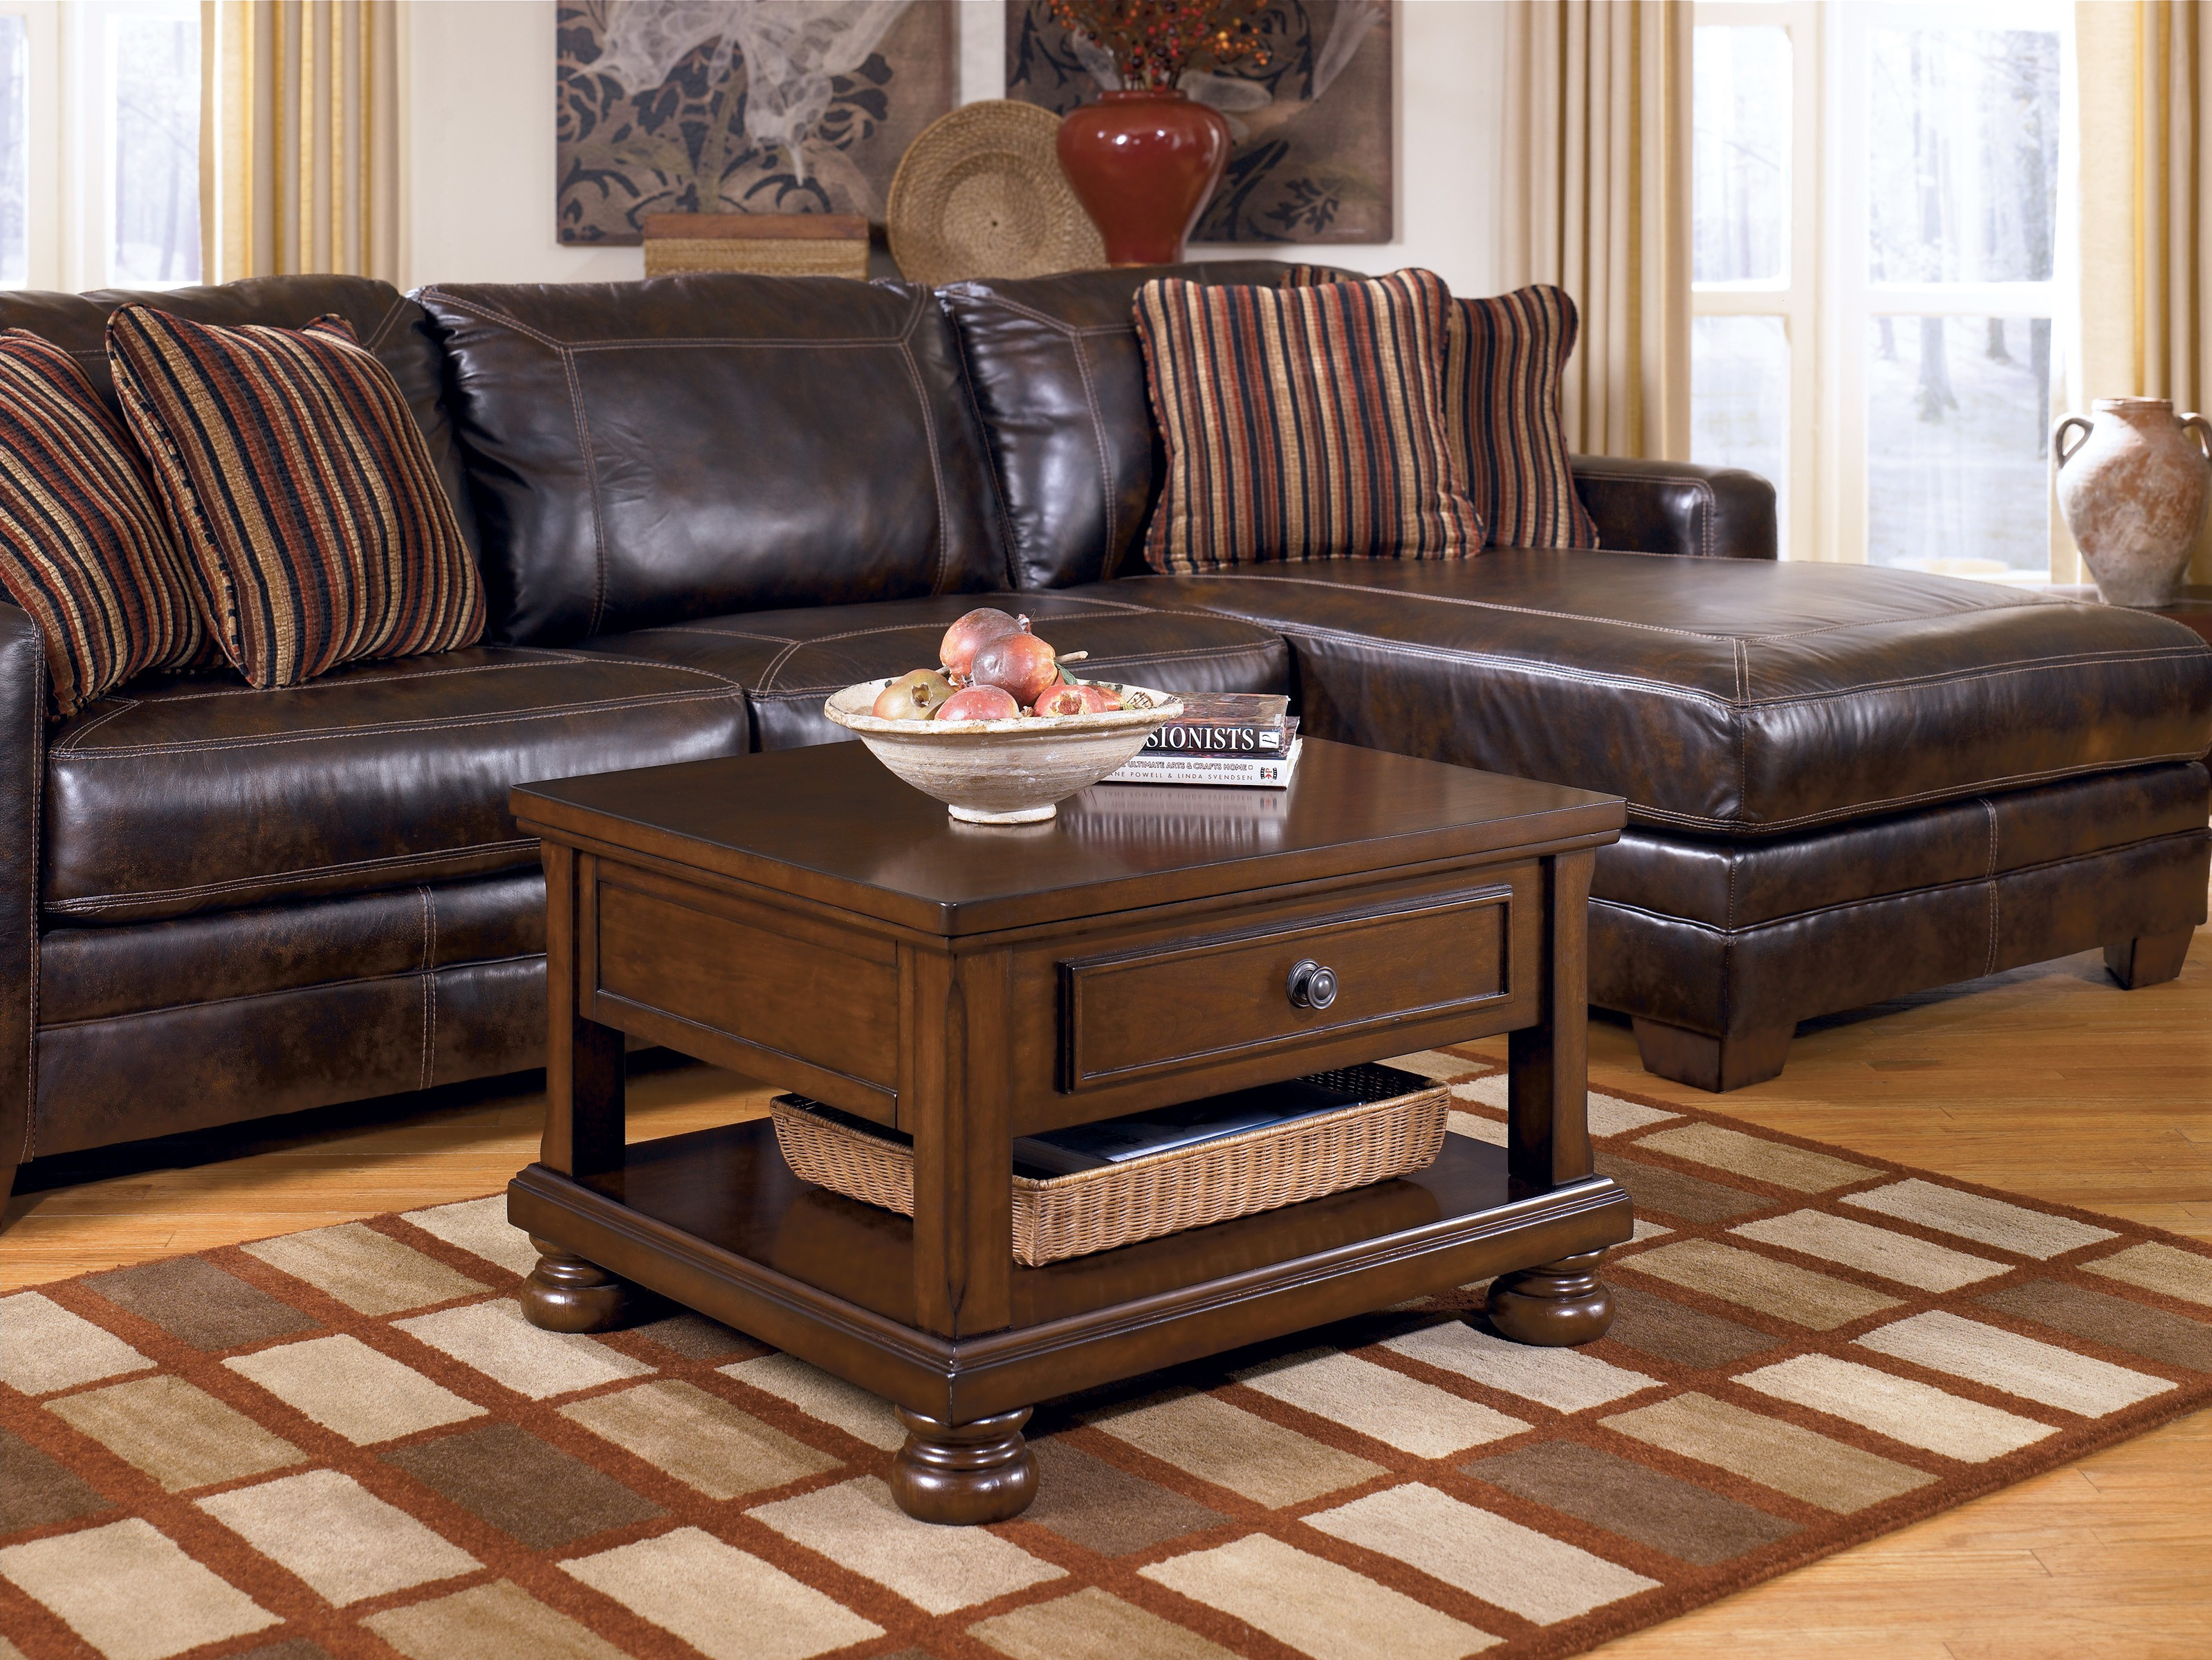 porter rustic brown lift top cocktail table and chair side best end tables for leather furniture signature design ashley wide lexington dining set great tall narrow lamp